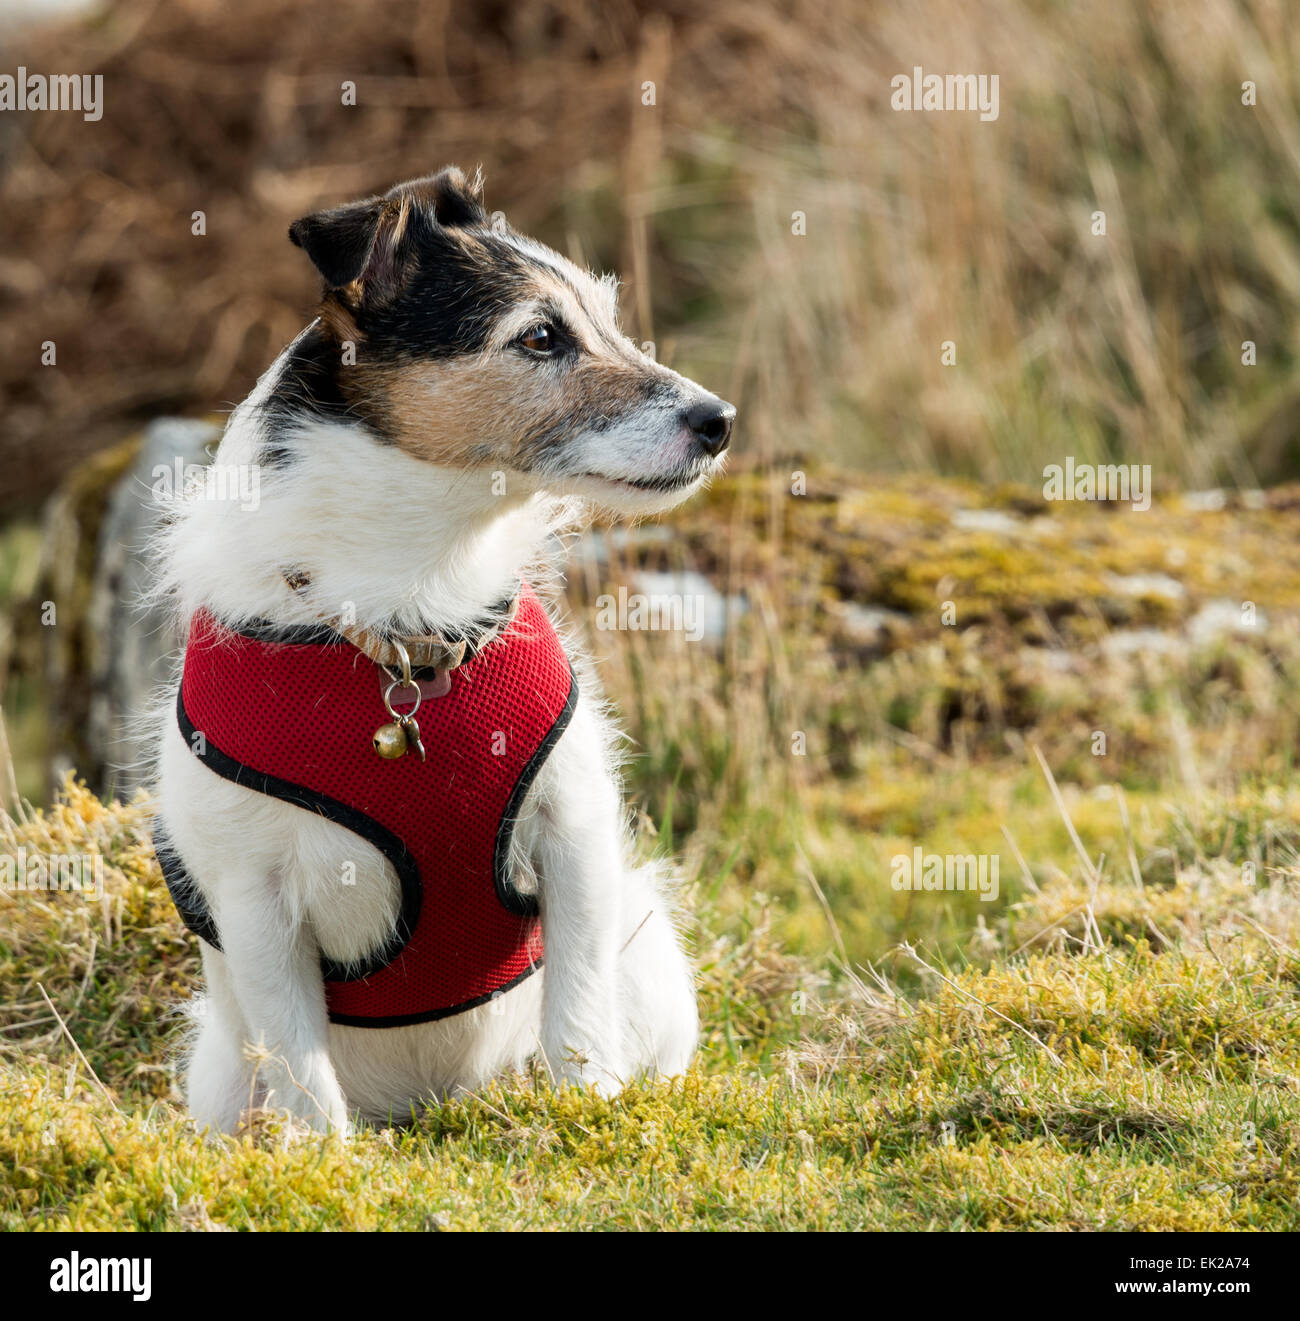 A working Parson Jack Russell Terrier dog wearing a red harness - Stock Image